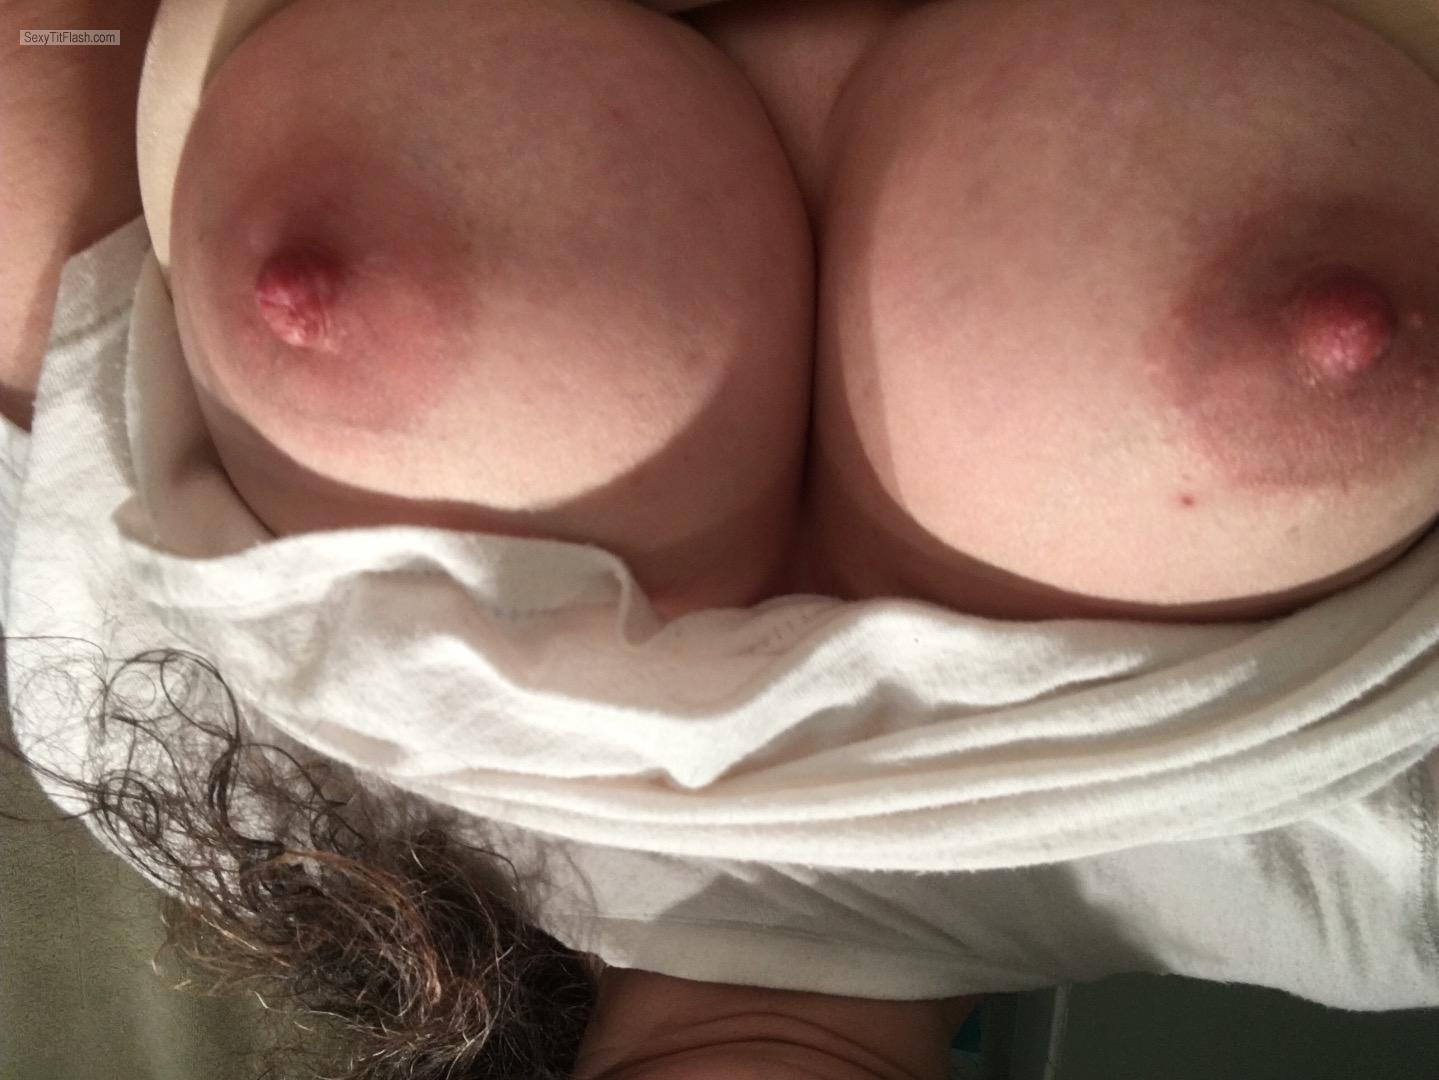 Tit Flash: Wife's Big Tits - Big44 from United States